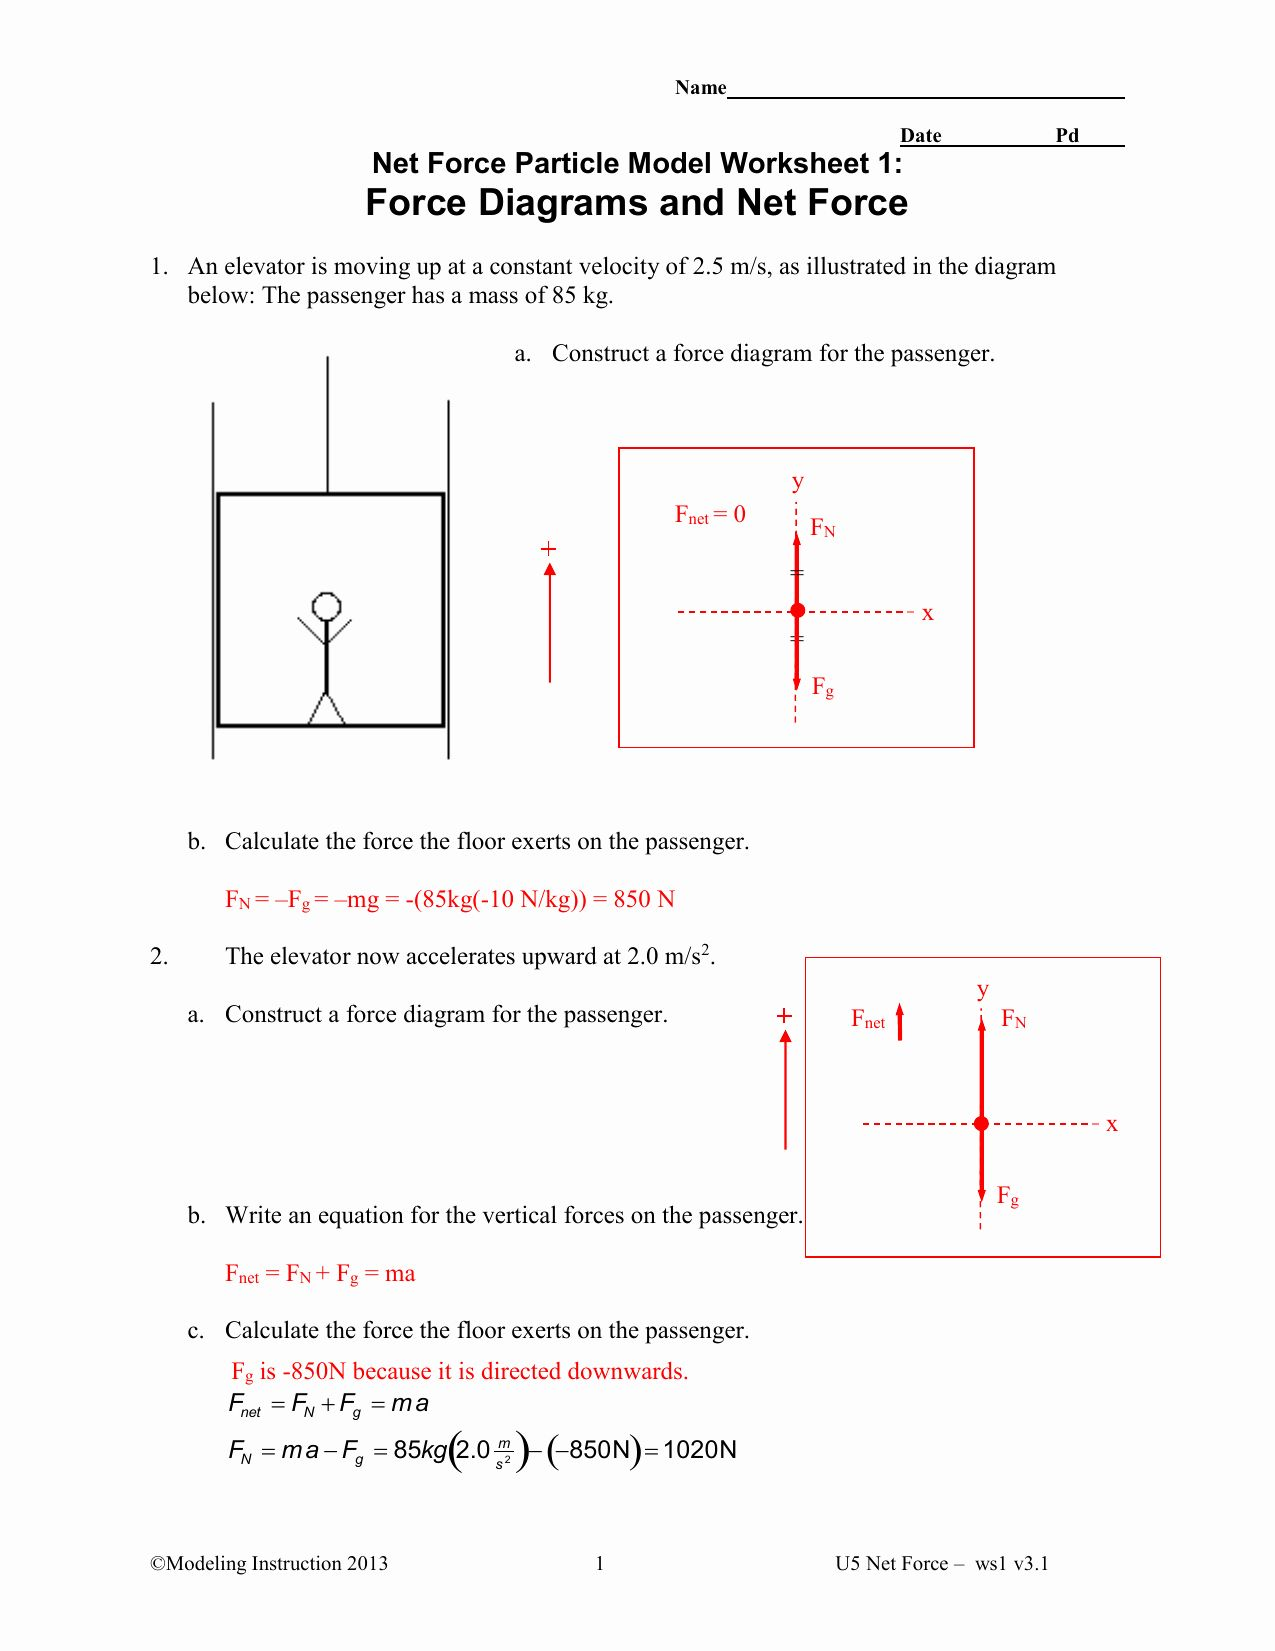 Net Force Worksheet Answers Unique Net Force Particle